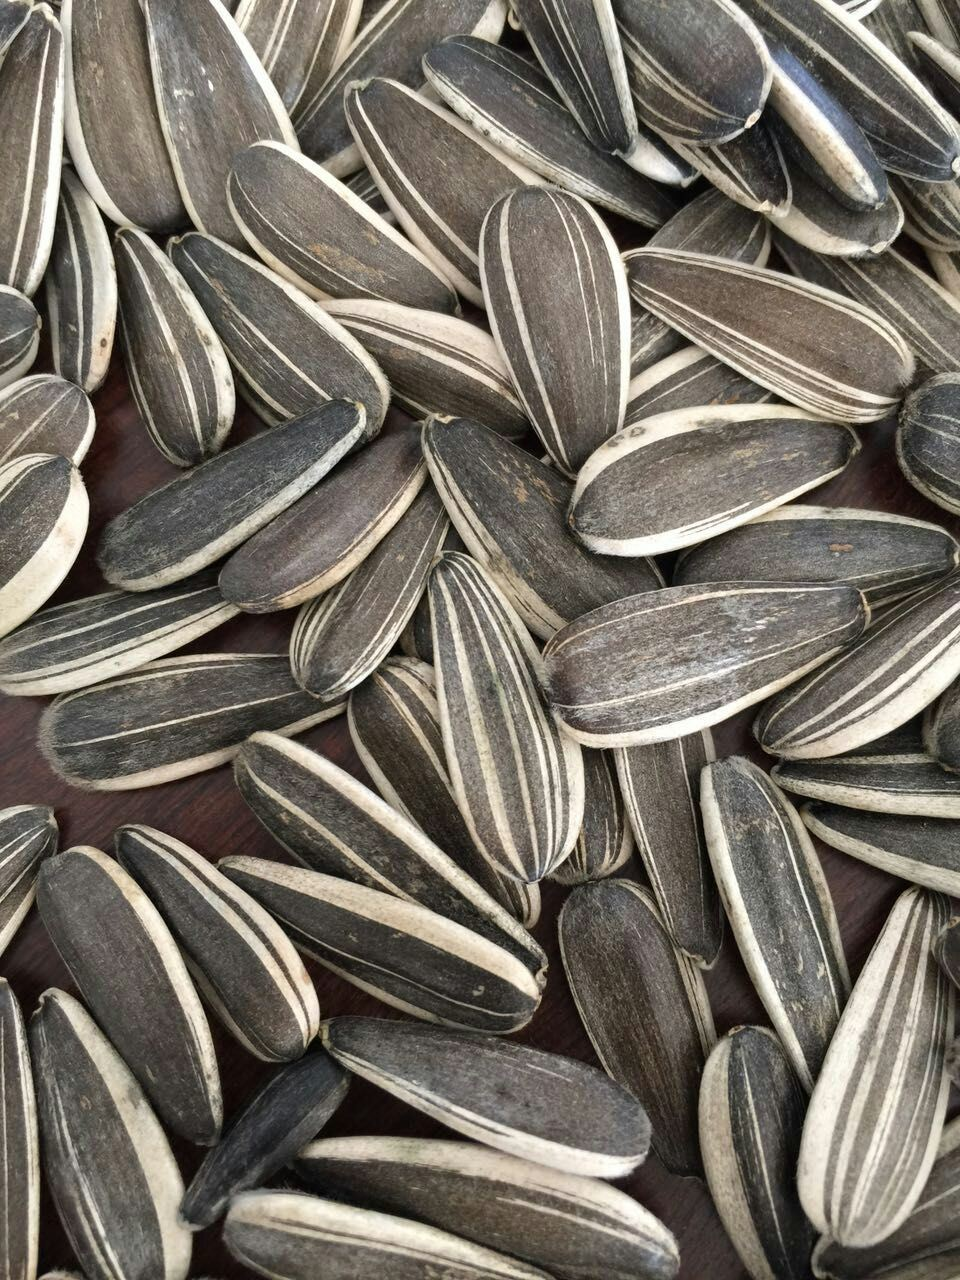 Professional Exporting High Quality Sunflower Seeds